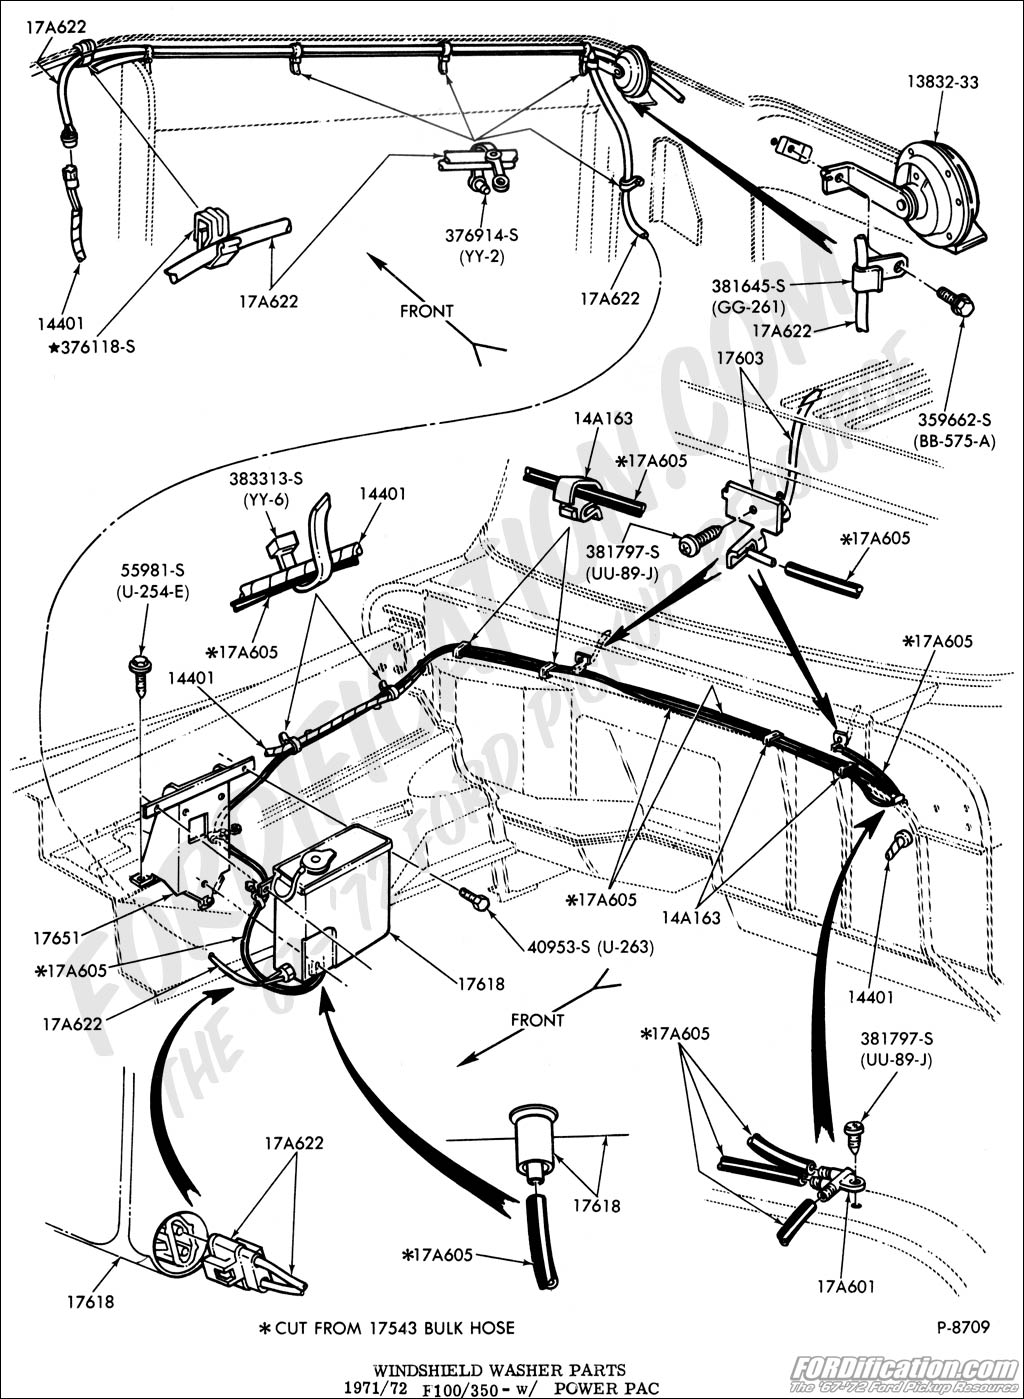 windshieldwshr pwrpak 100 [ 2003 ford f350 wiring diagram ] 2001 ford windstar lx 2003 ford explorer under dash fuse box at creativeand.co